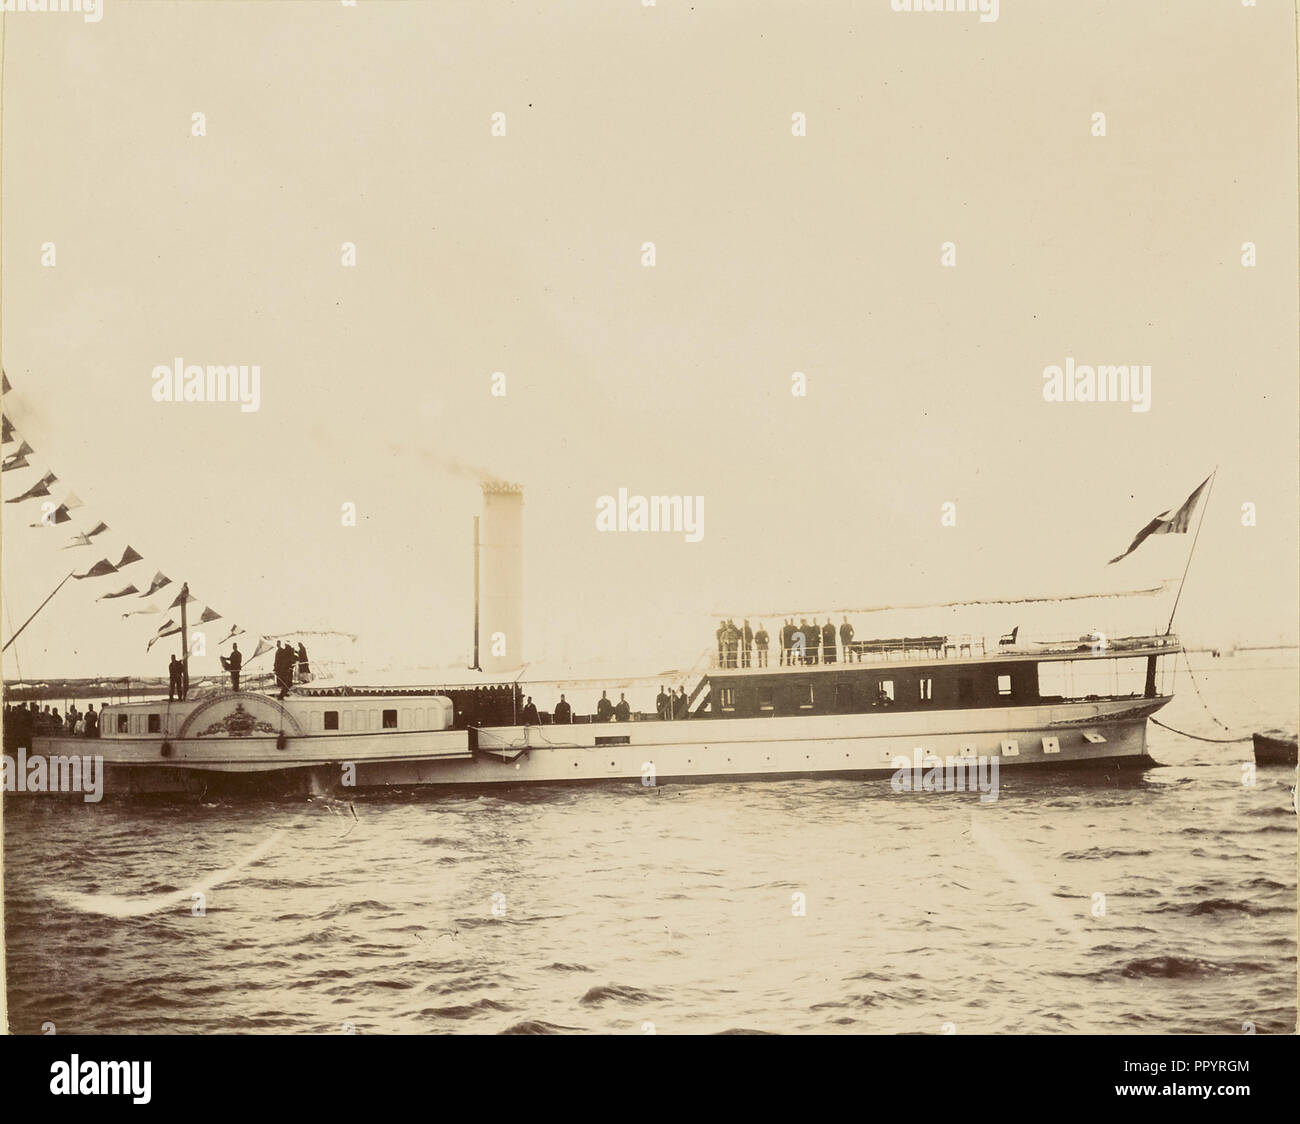 Barge; about 1860 - 1880; Tinted Albumen silver print - Stock Image